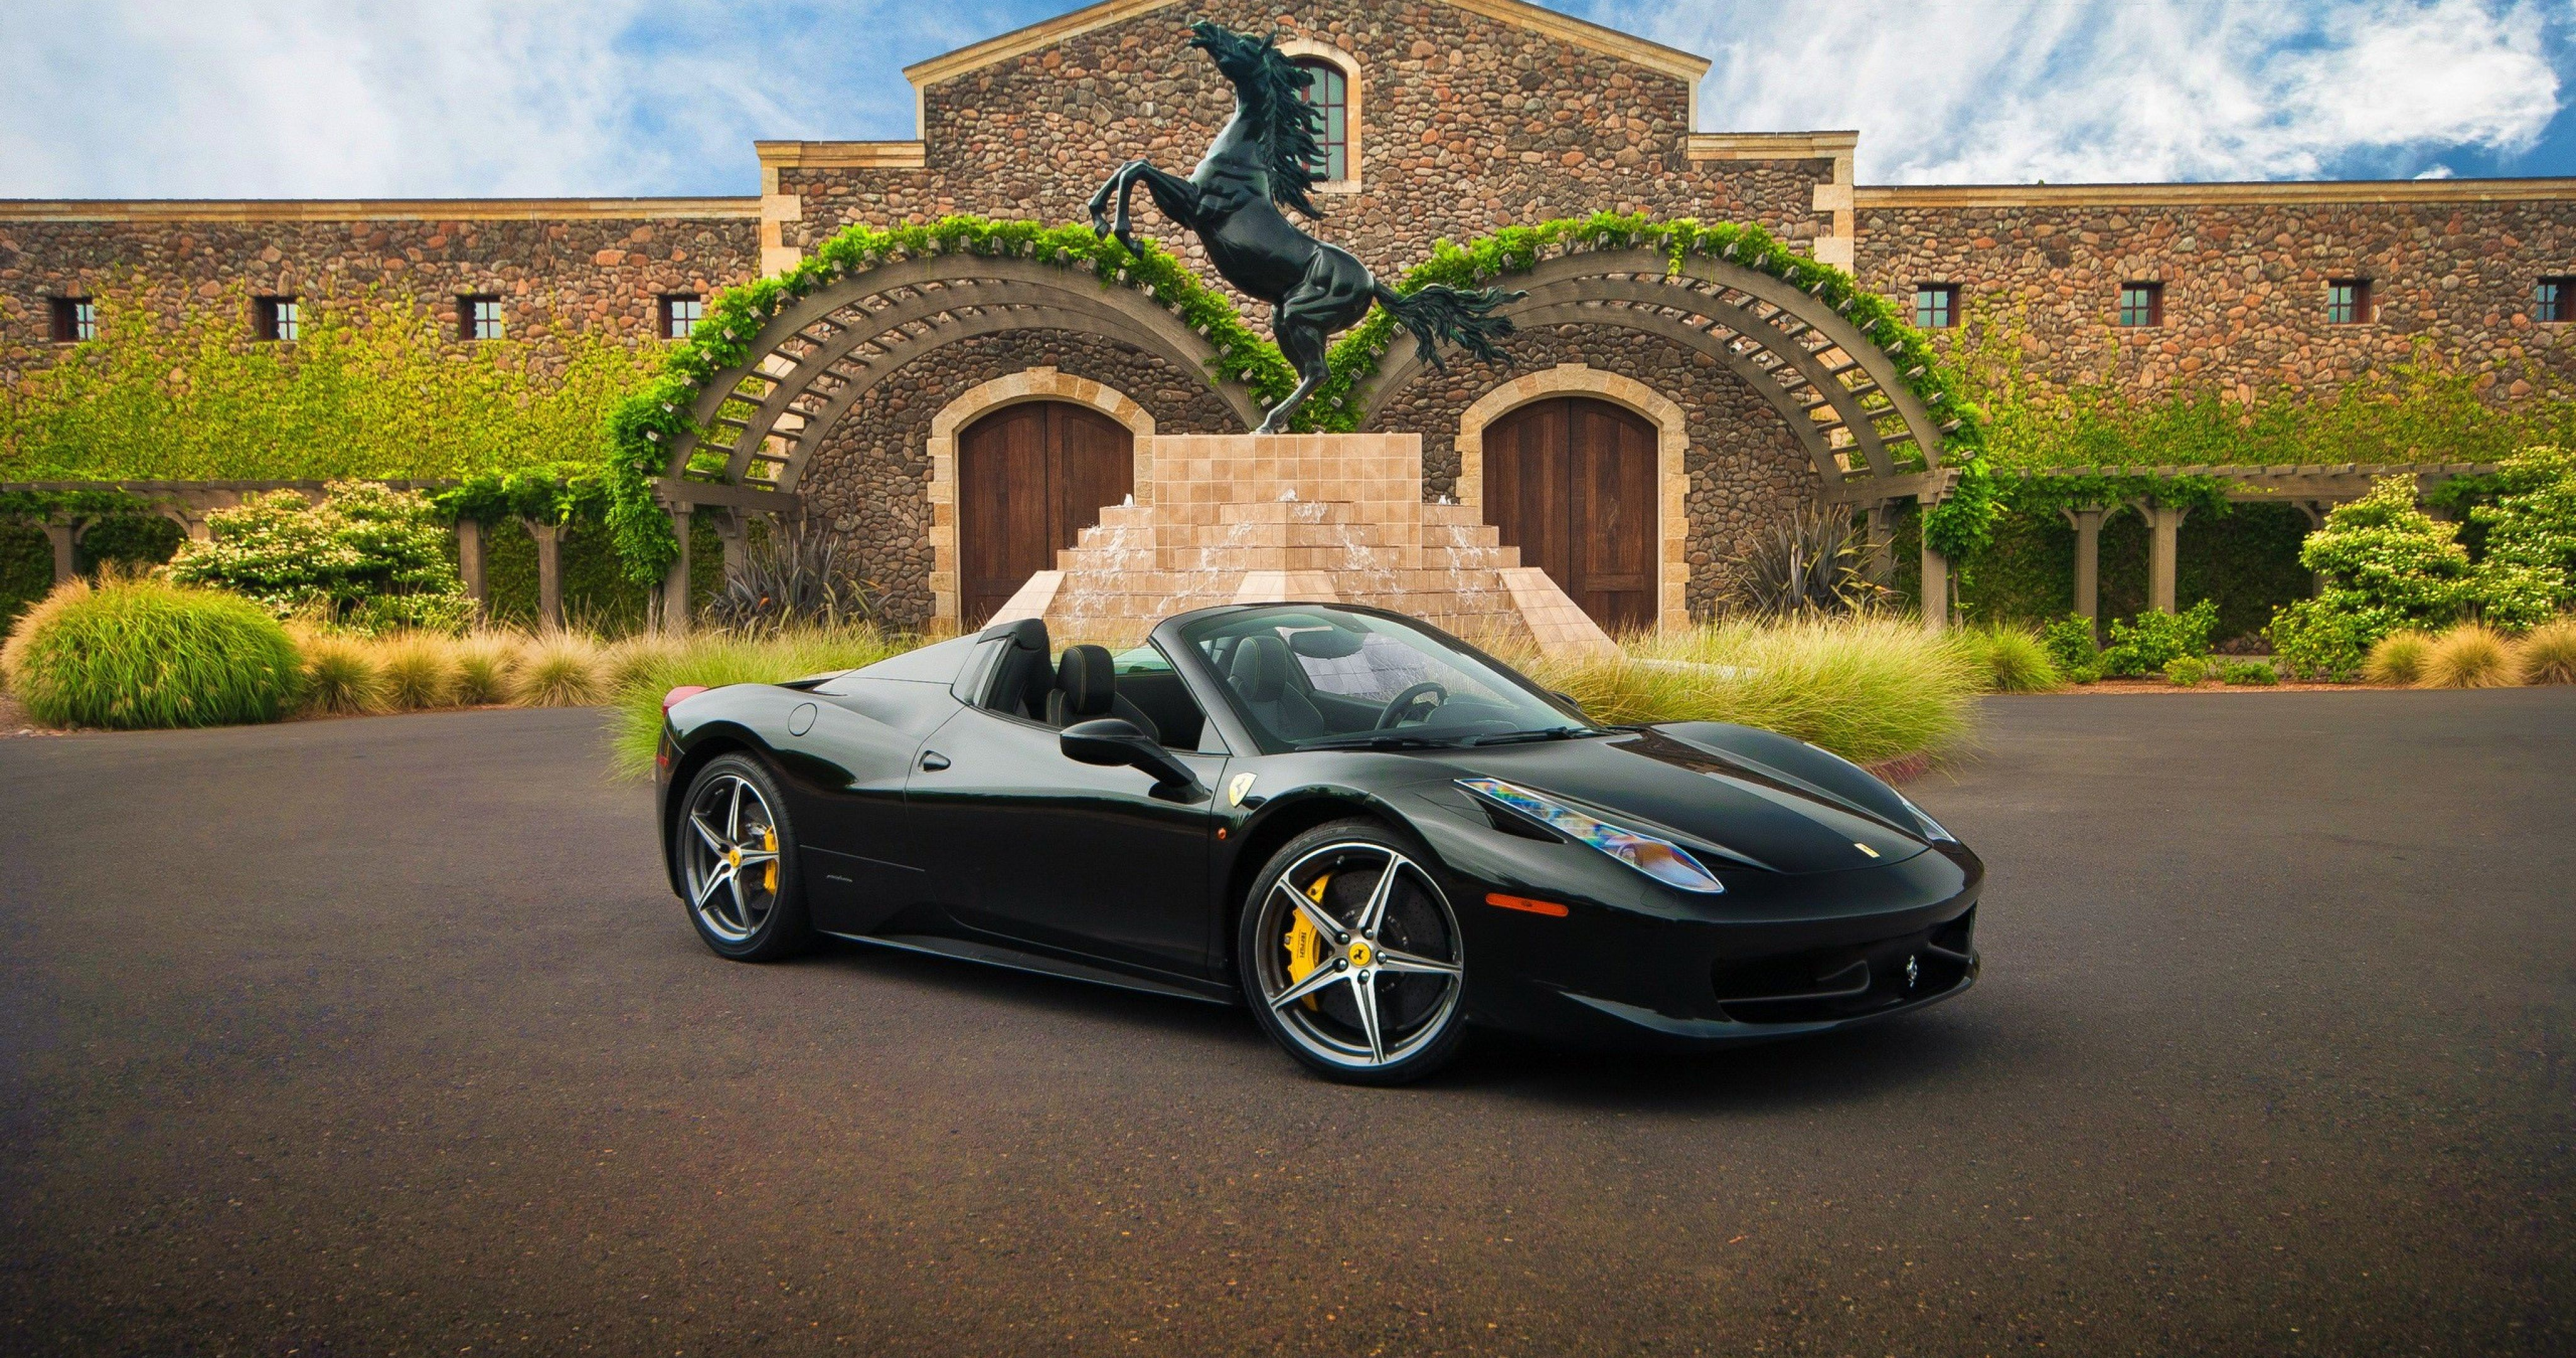 Ferrari 458 Spyder Super Car 4k Ultra Hd Wallpaper Ololoshenka